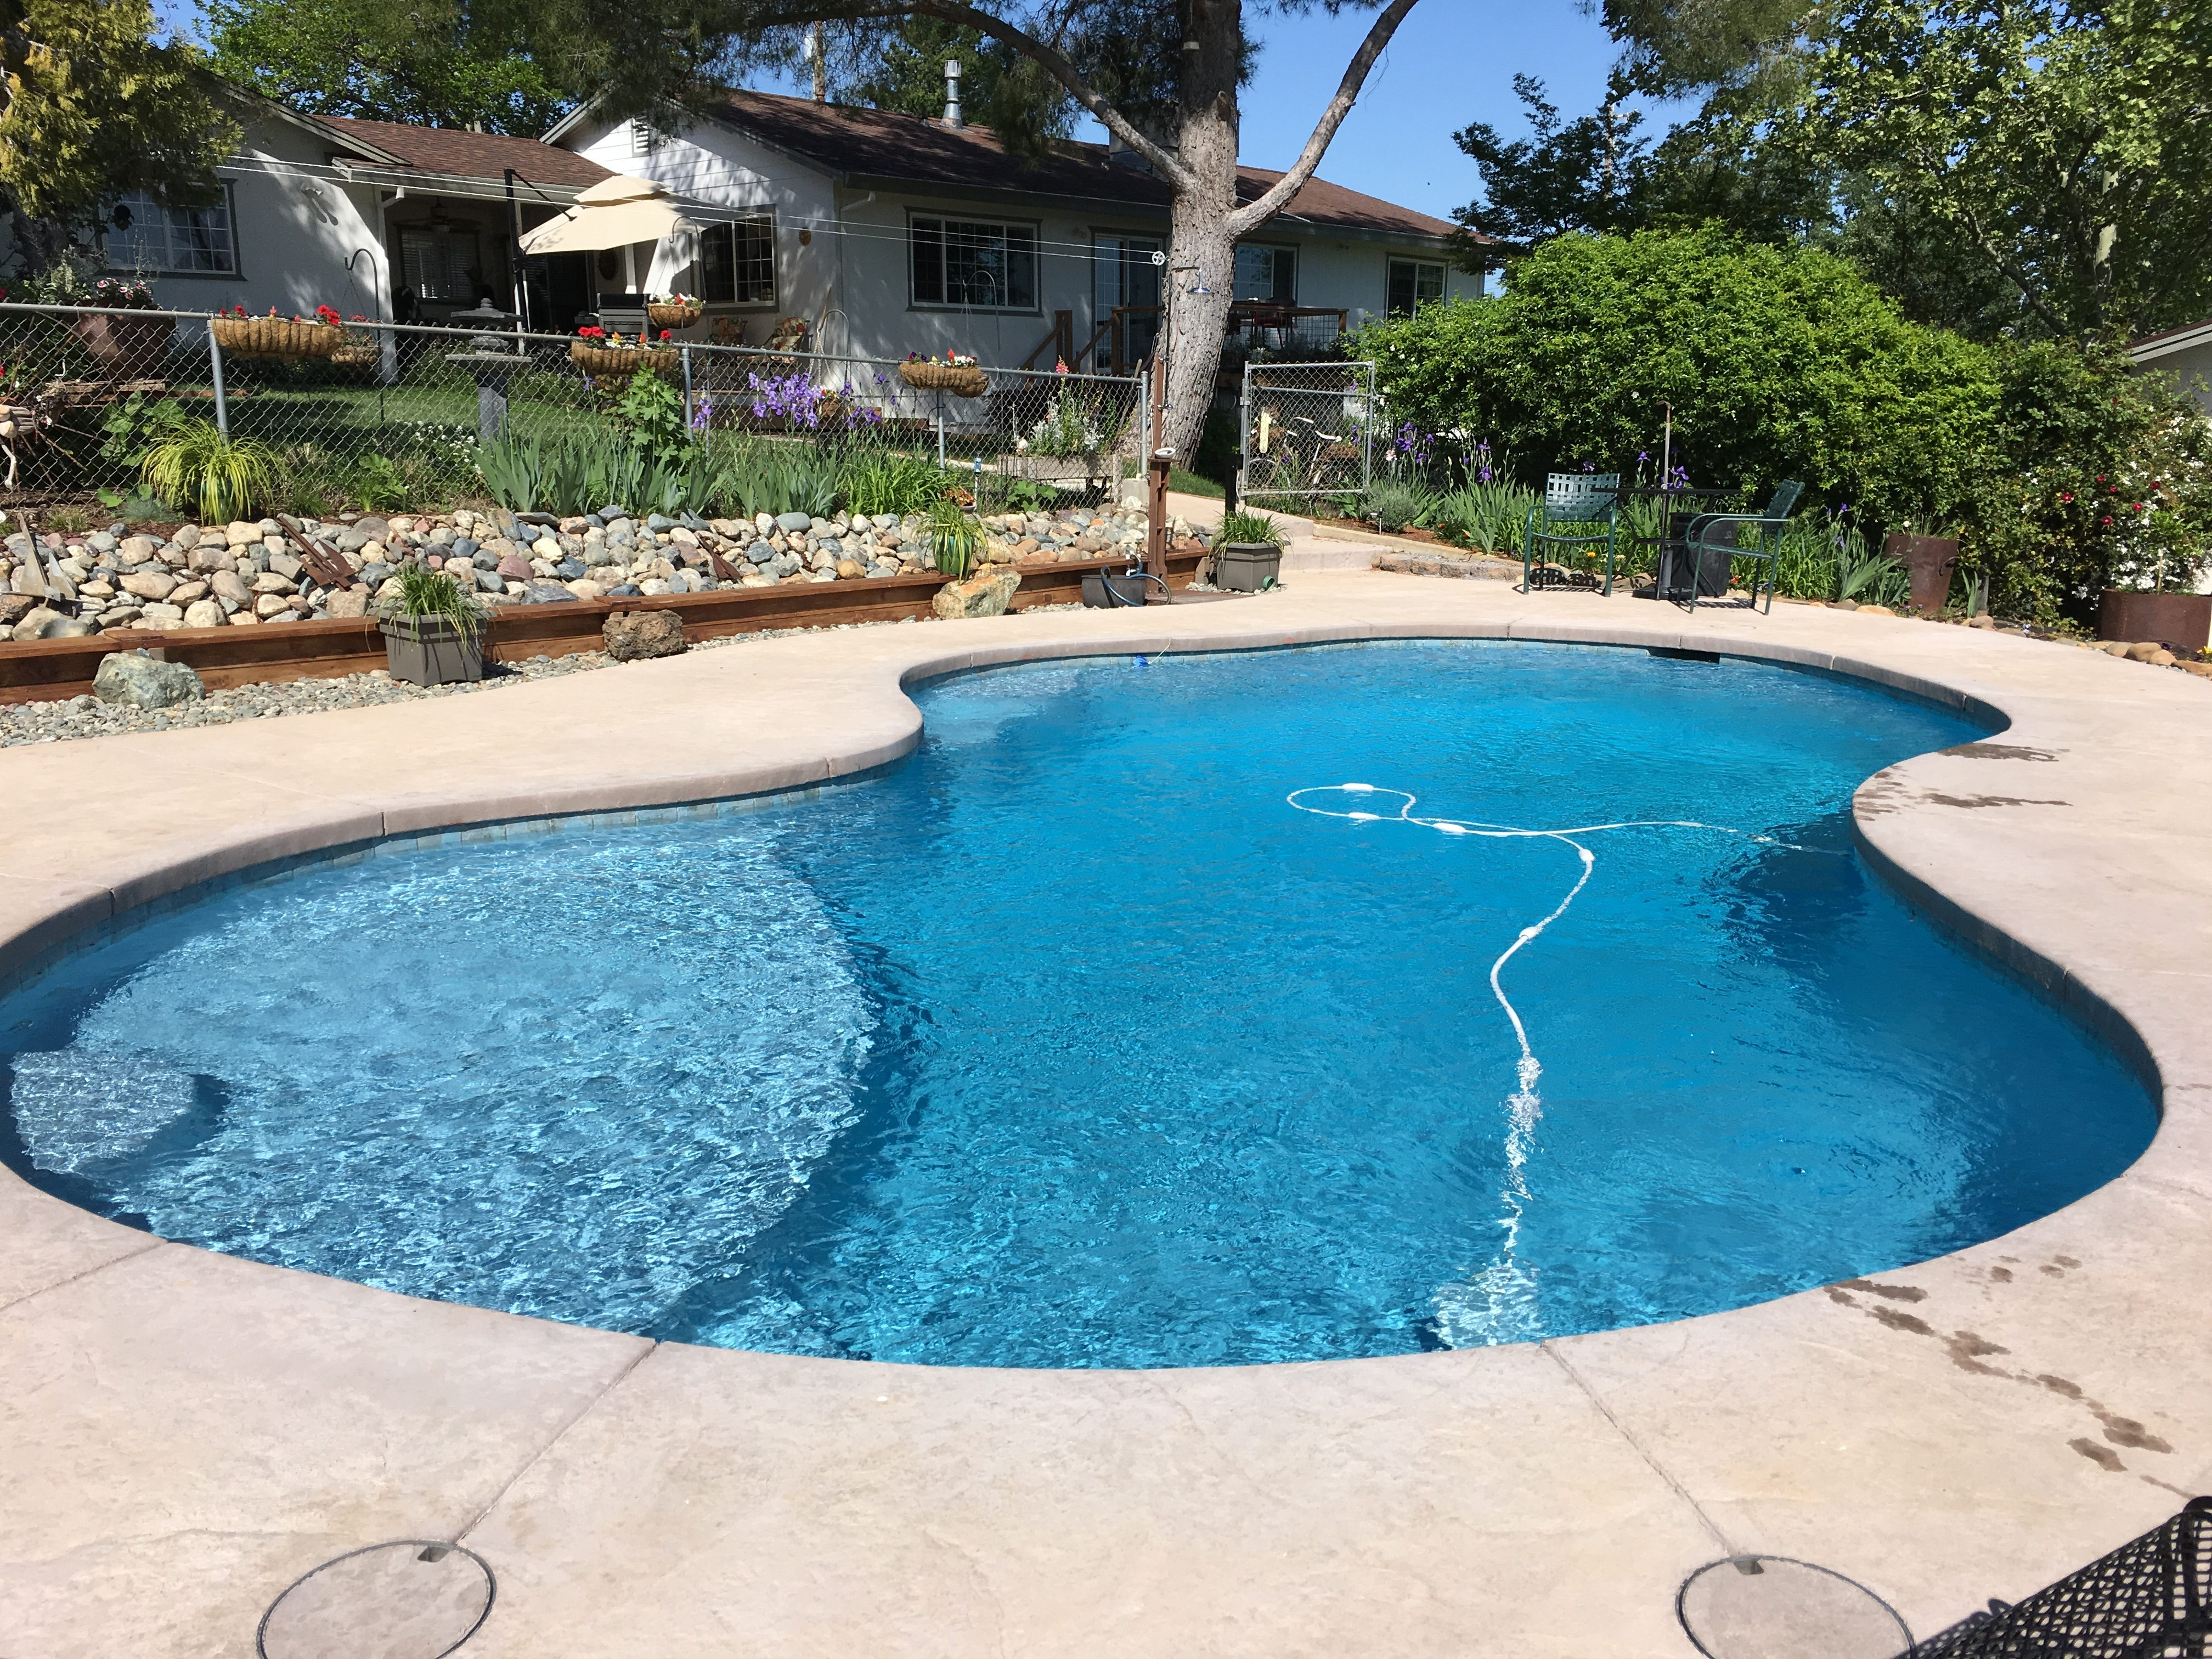 Peculiar Your Backyard Your Backyard Things To Build Working A Professional Team Santa Build A Your Backyard Paradise This Summer Things outdoor Cool Things For Your Backyard